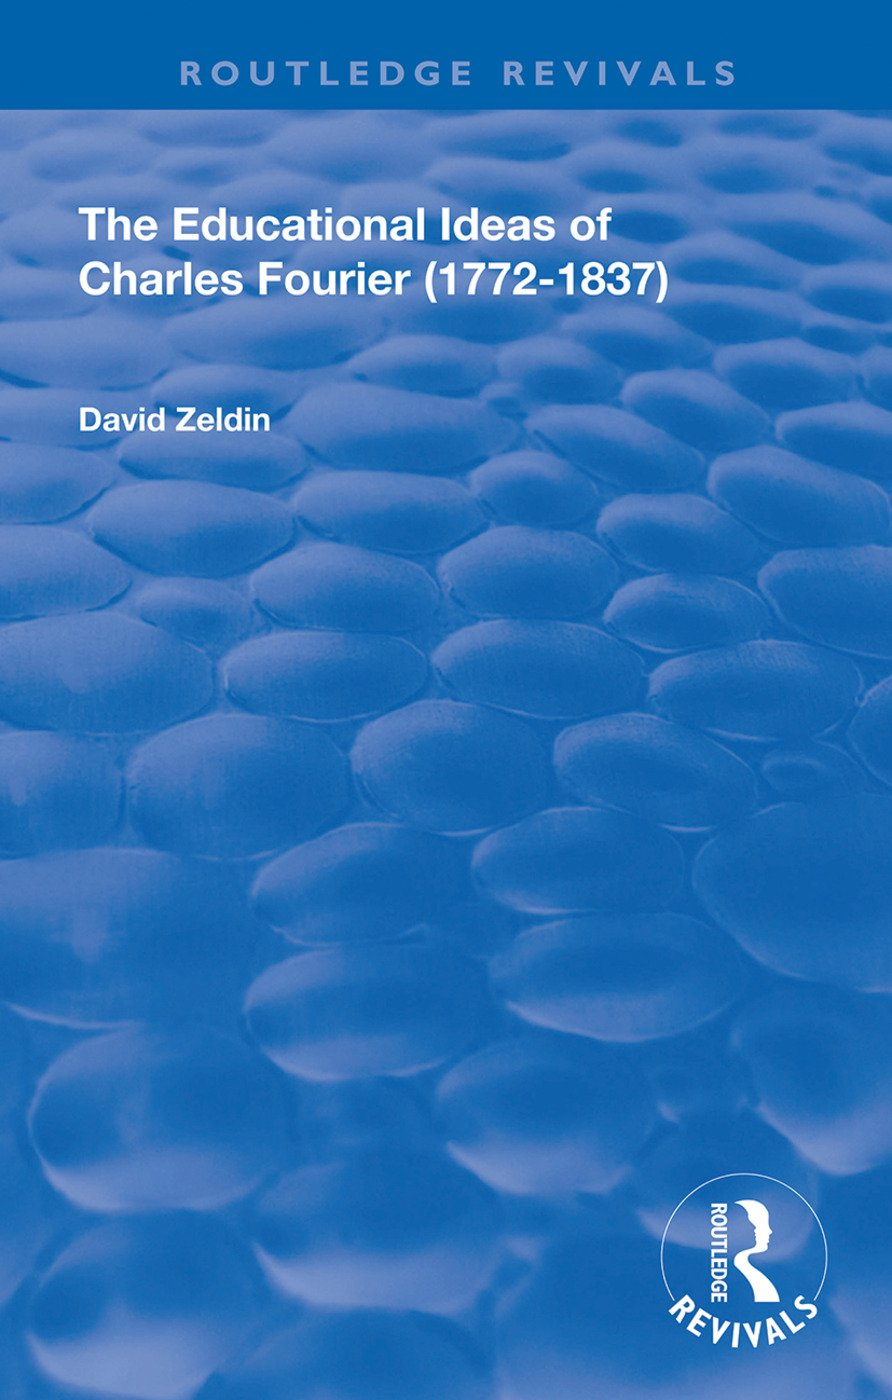 The Educational Ideas of Charles Fourier: 1772-1837 book cover